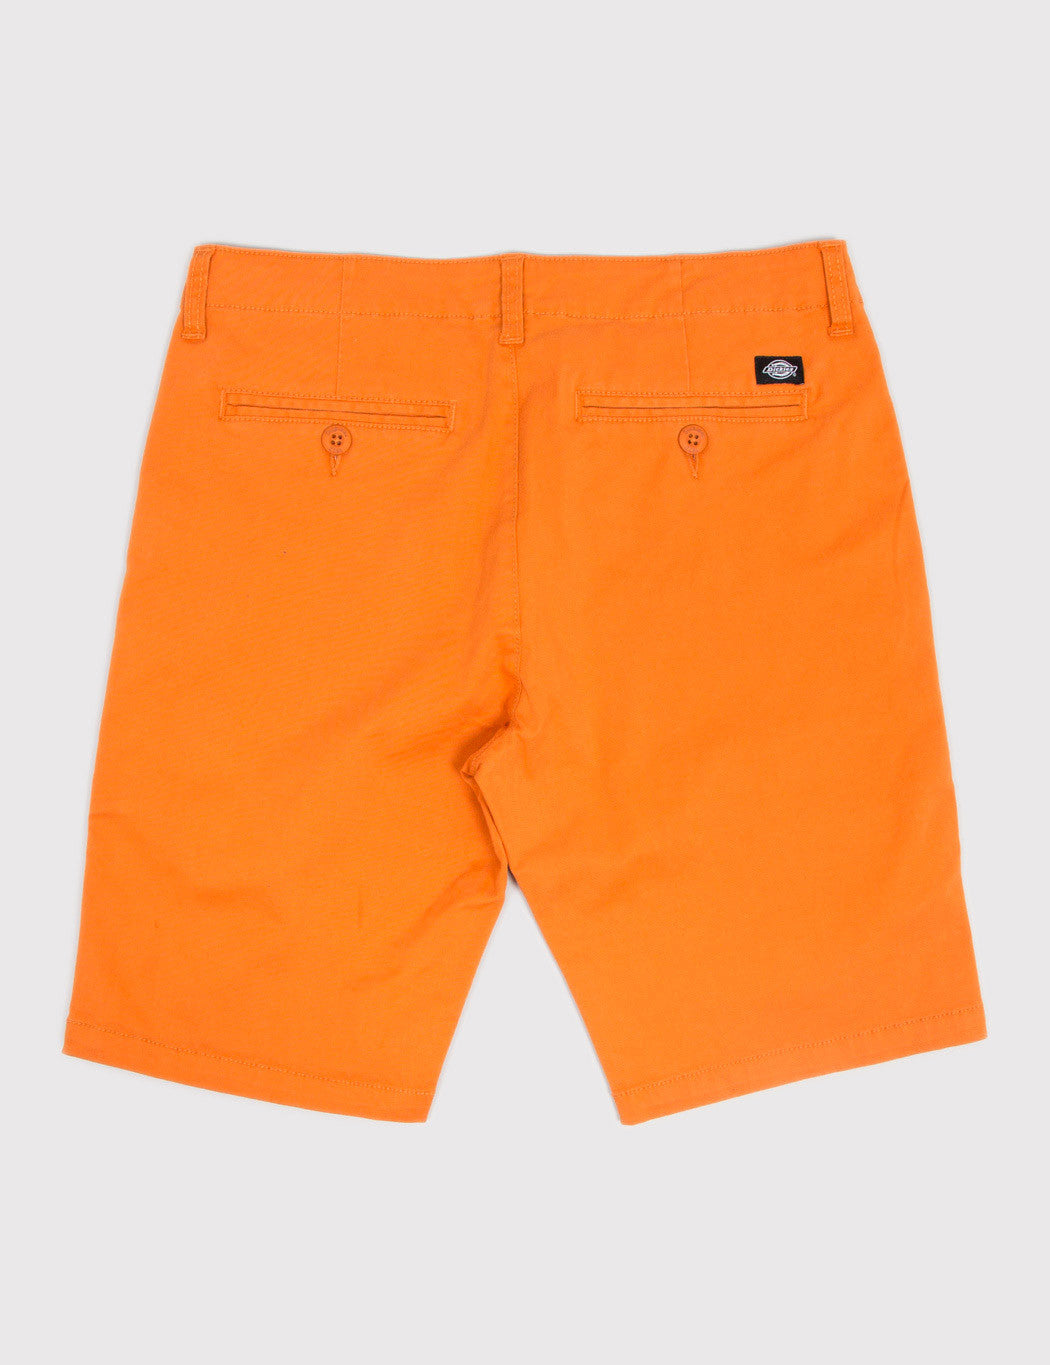 Dickies Palm Spring Shorts - Harvest Pumpkin Orange